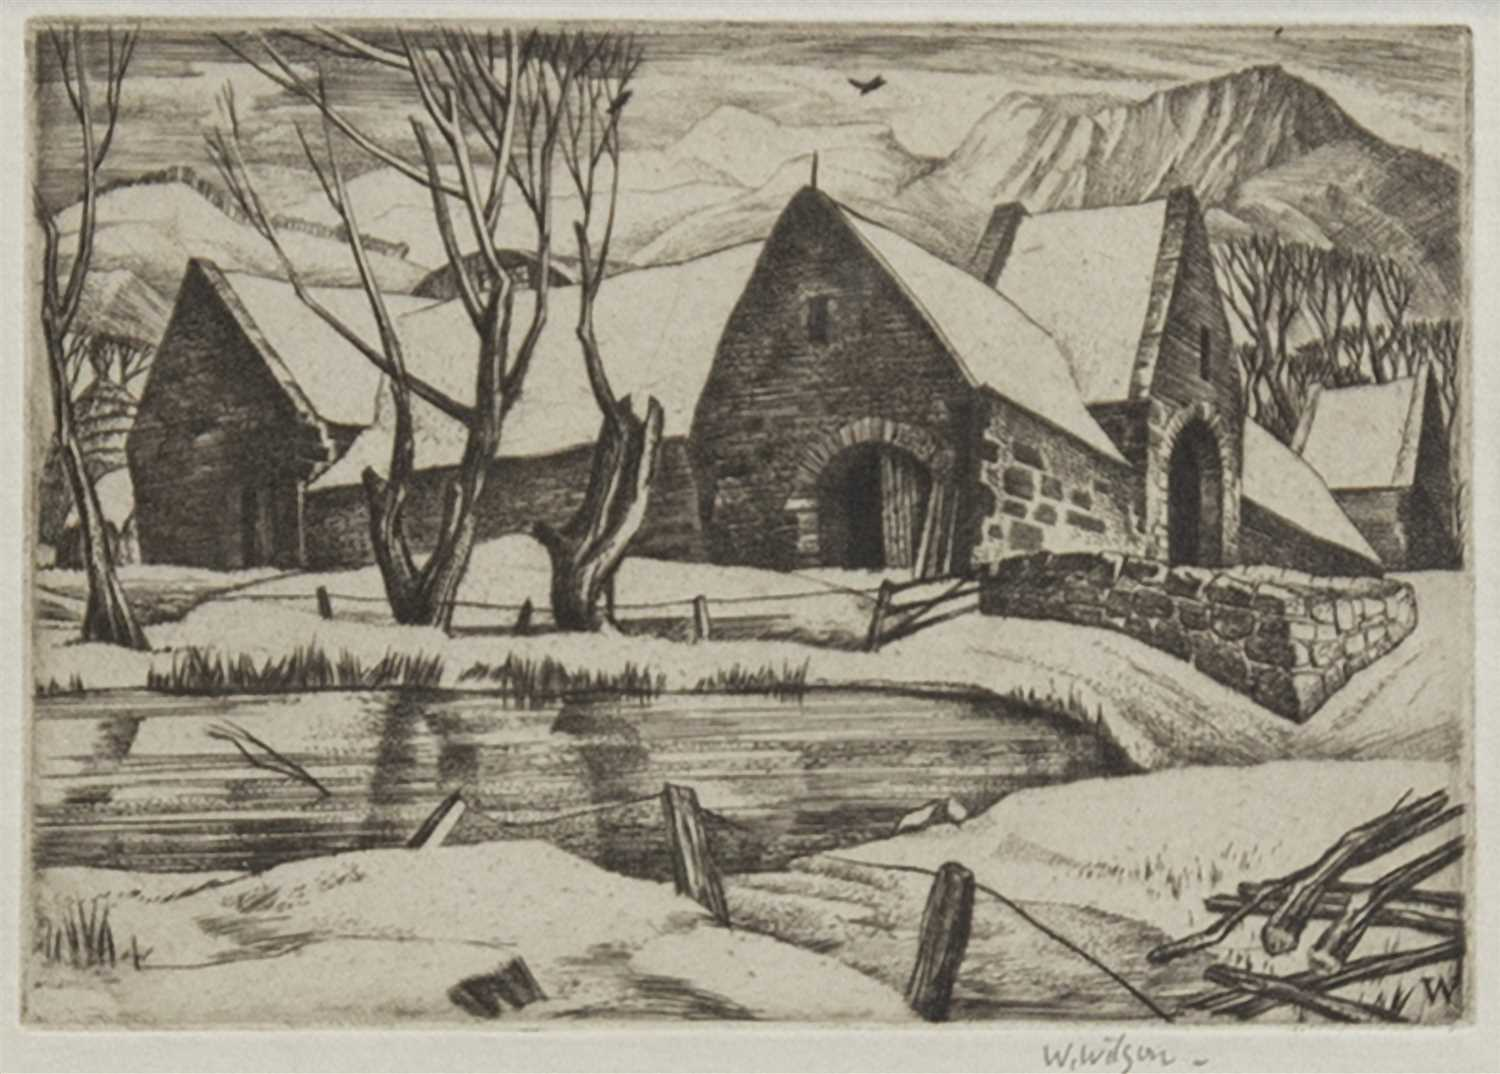 Lot 437-SWANSTON FARM, AN ETCHING BY WILLIAM WILSON